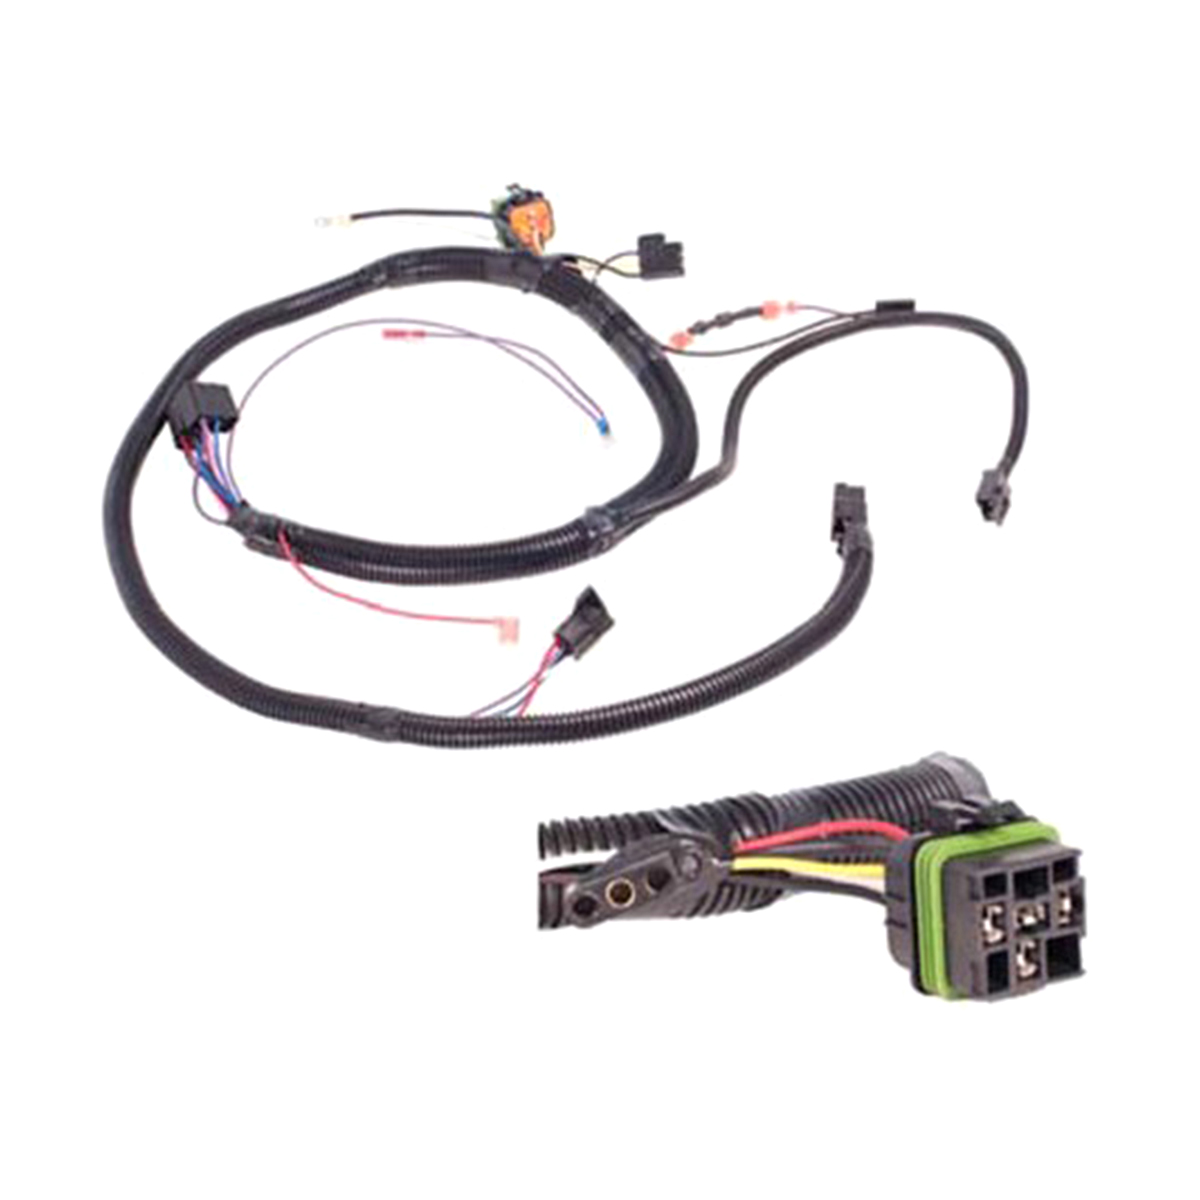 500052 500052 dixie chopper generac 33hp wiring harness dixie chopper wiring diagram at n-0.co